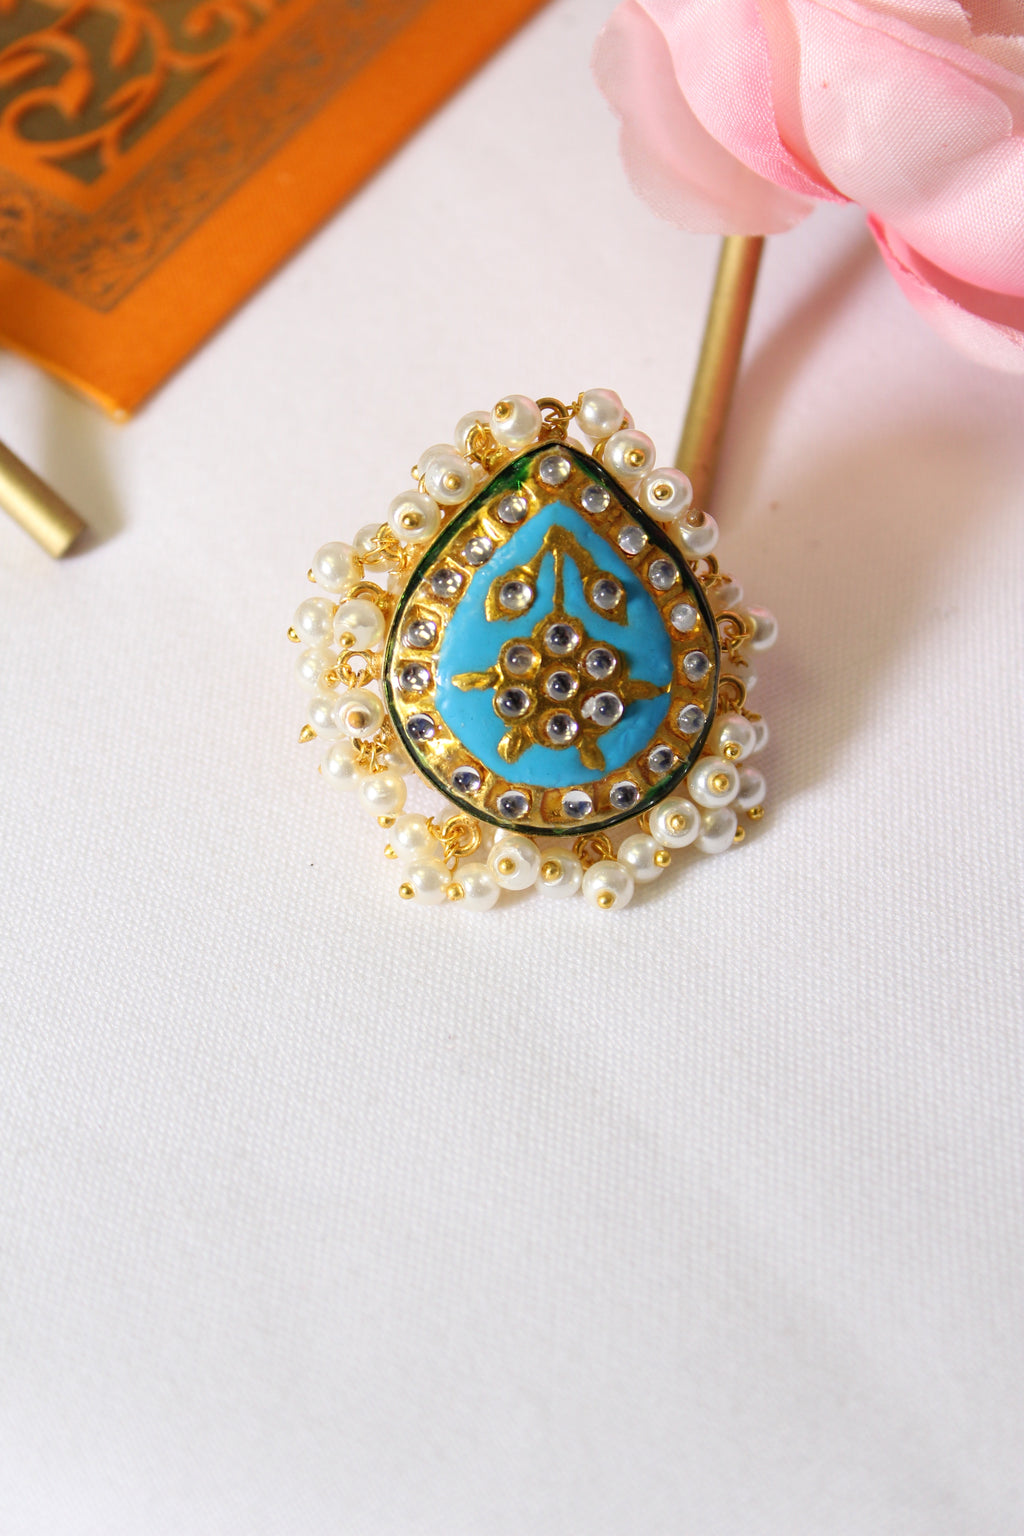 Firozi blue kundan meenakari ring lined with pearls